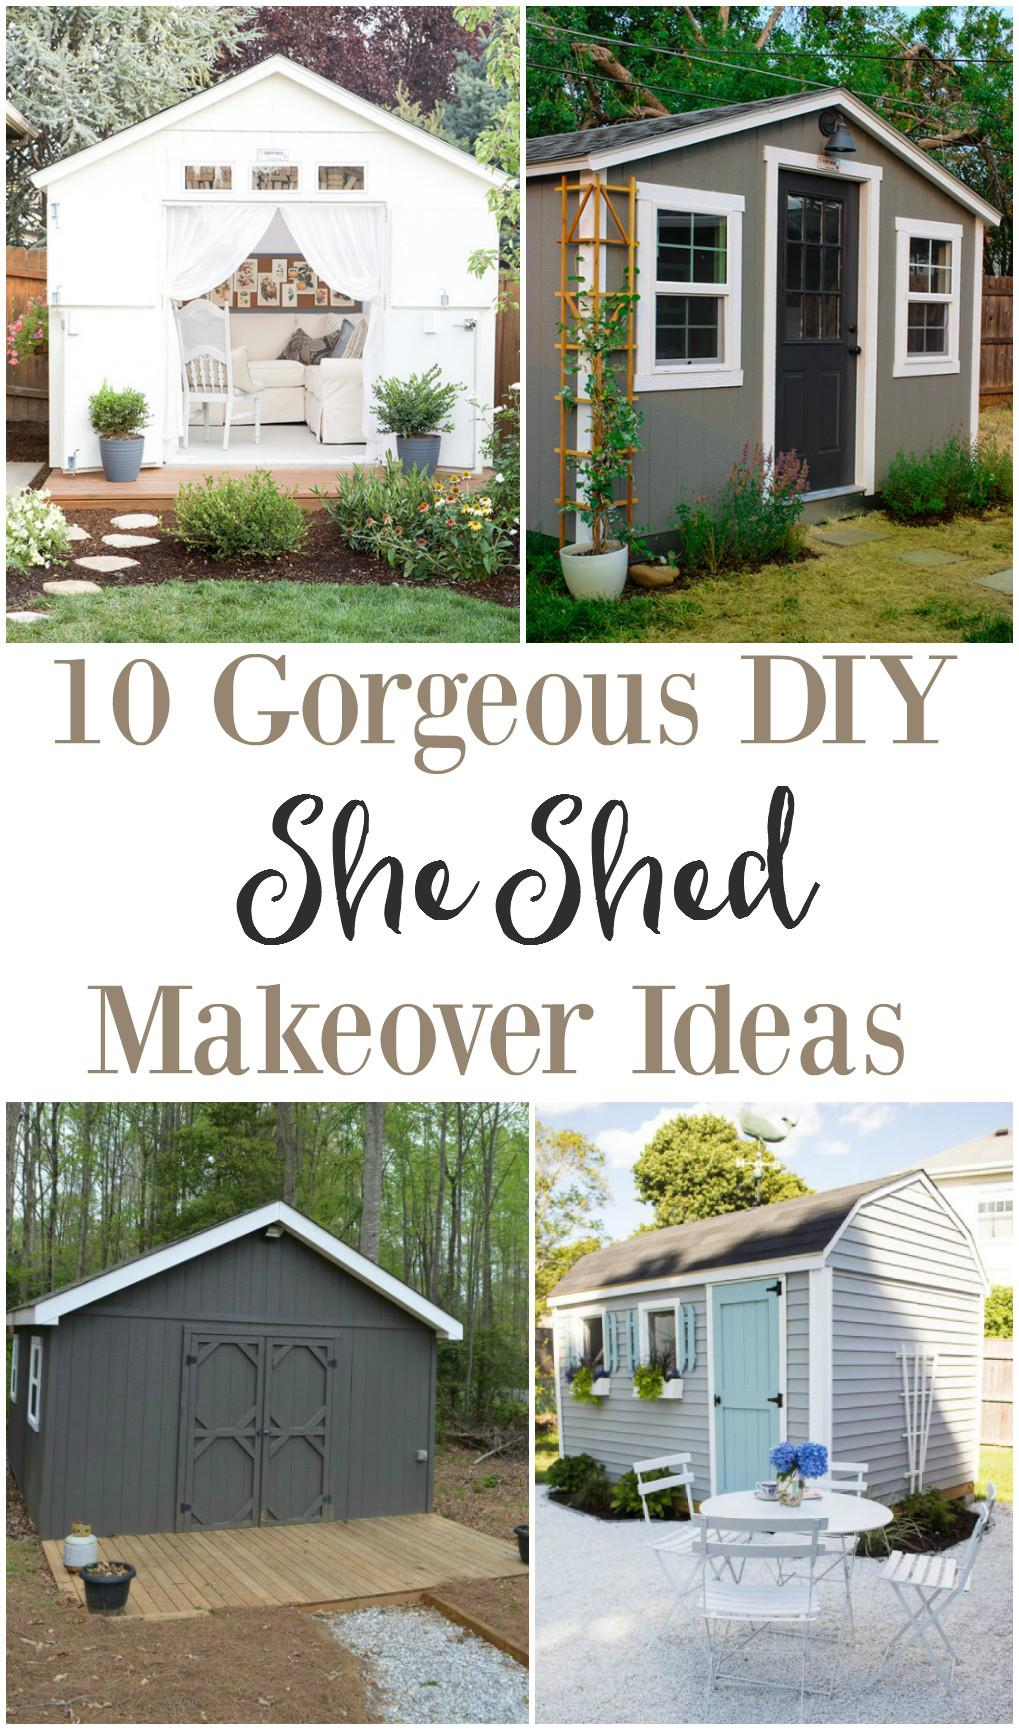 She Shed Makeover Ideas Weathered Fox